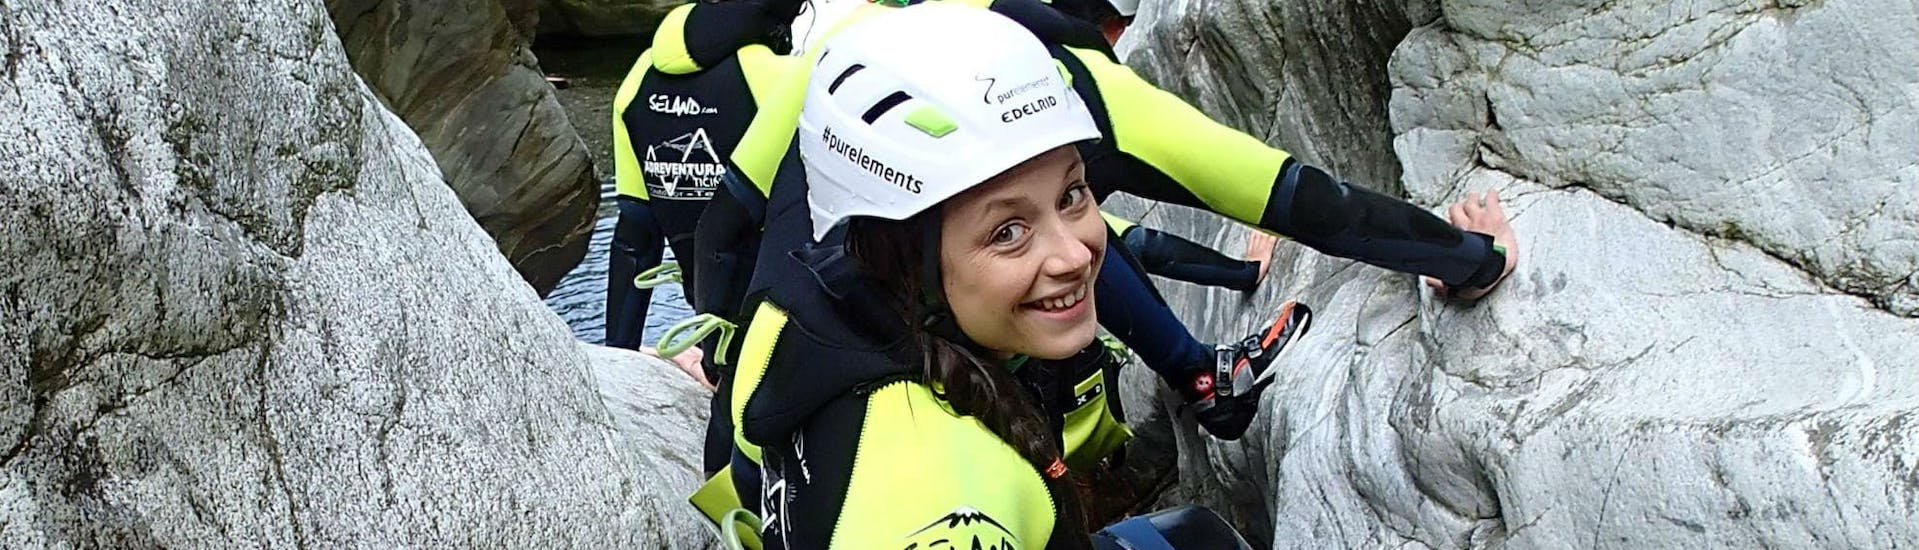 Family Canyoning in Corippo in Ticino with Purelements Ticino - Hero image